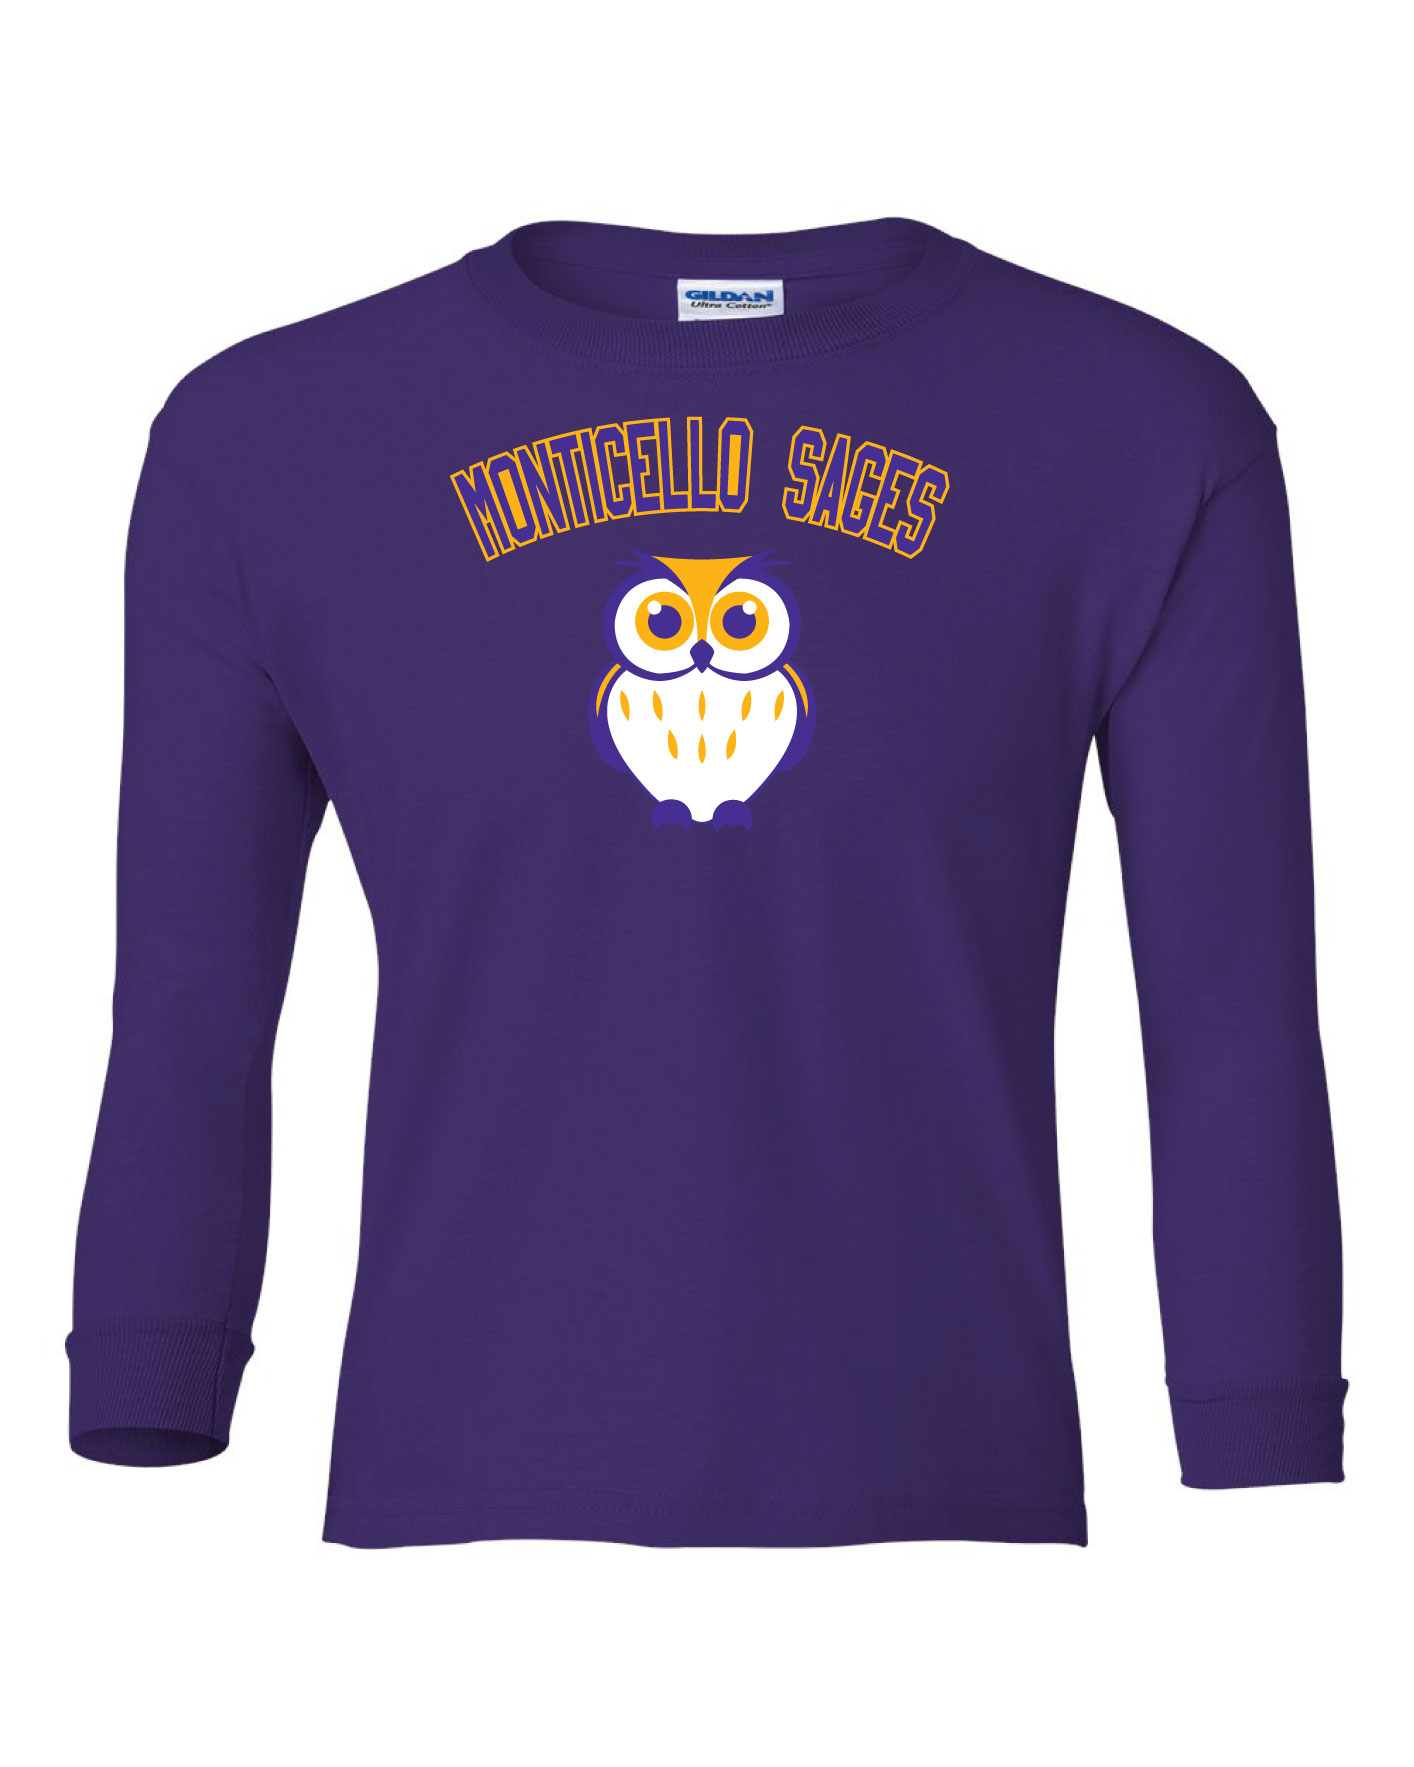 Youth Purple Little Sages Long-sleeved Shirt